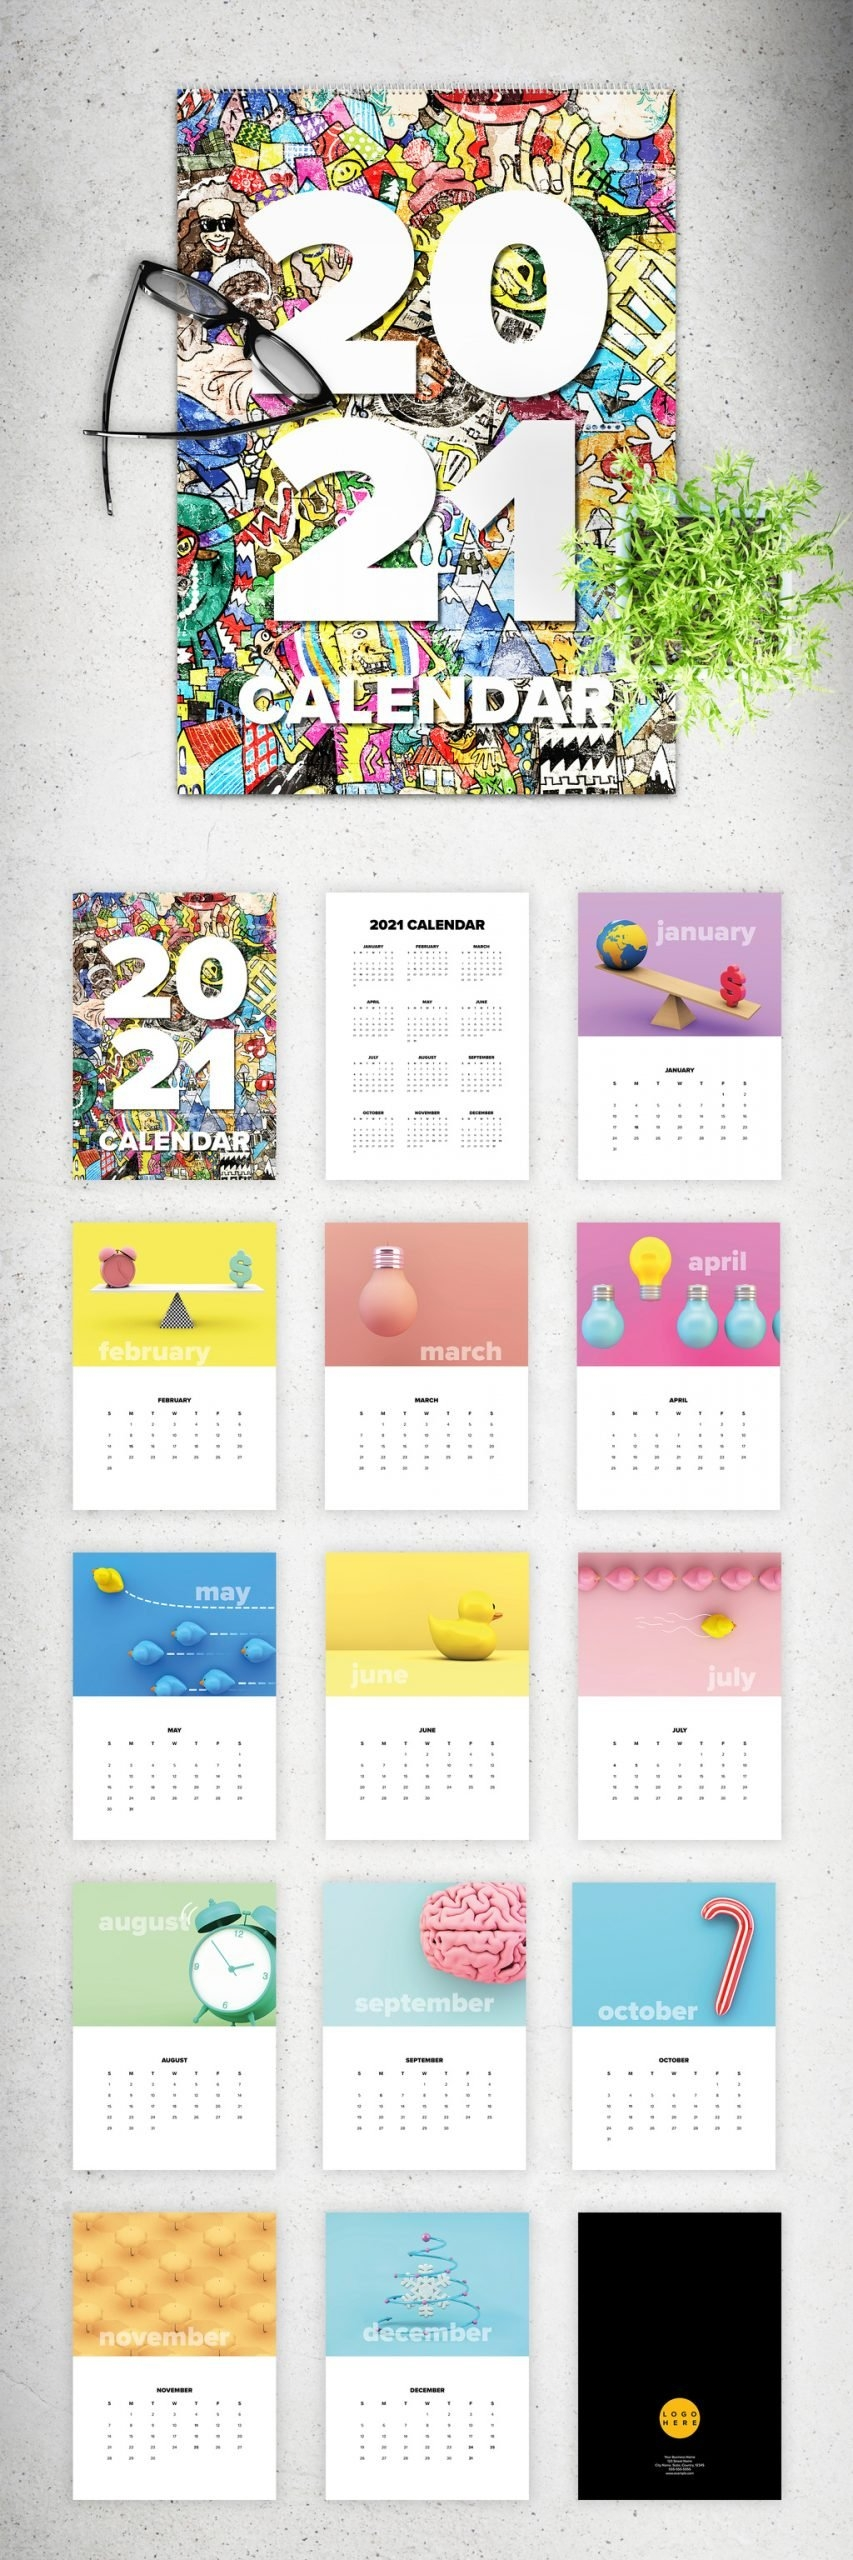 Calendar 2021 Collection For Photoshop ( Update Dec 2020 ) | Gfx Download with regard to 2021 Picture Calendar Template For Illustrator